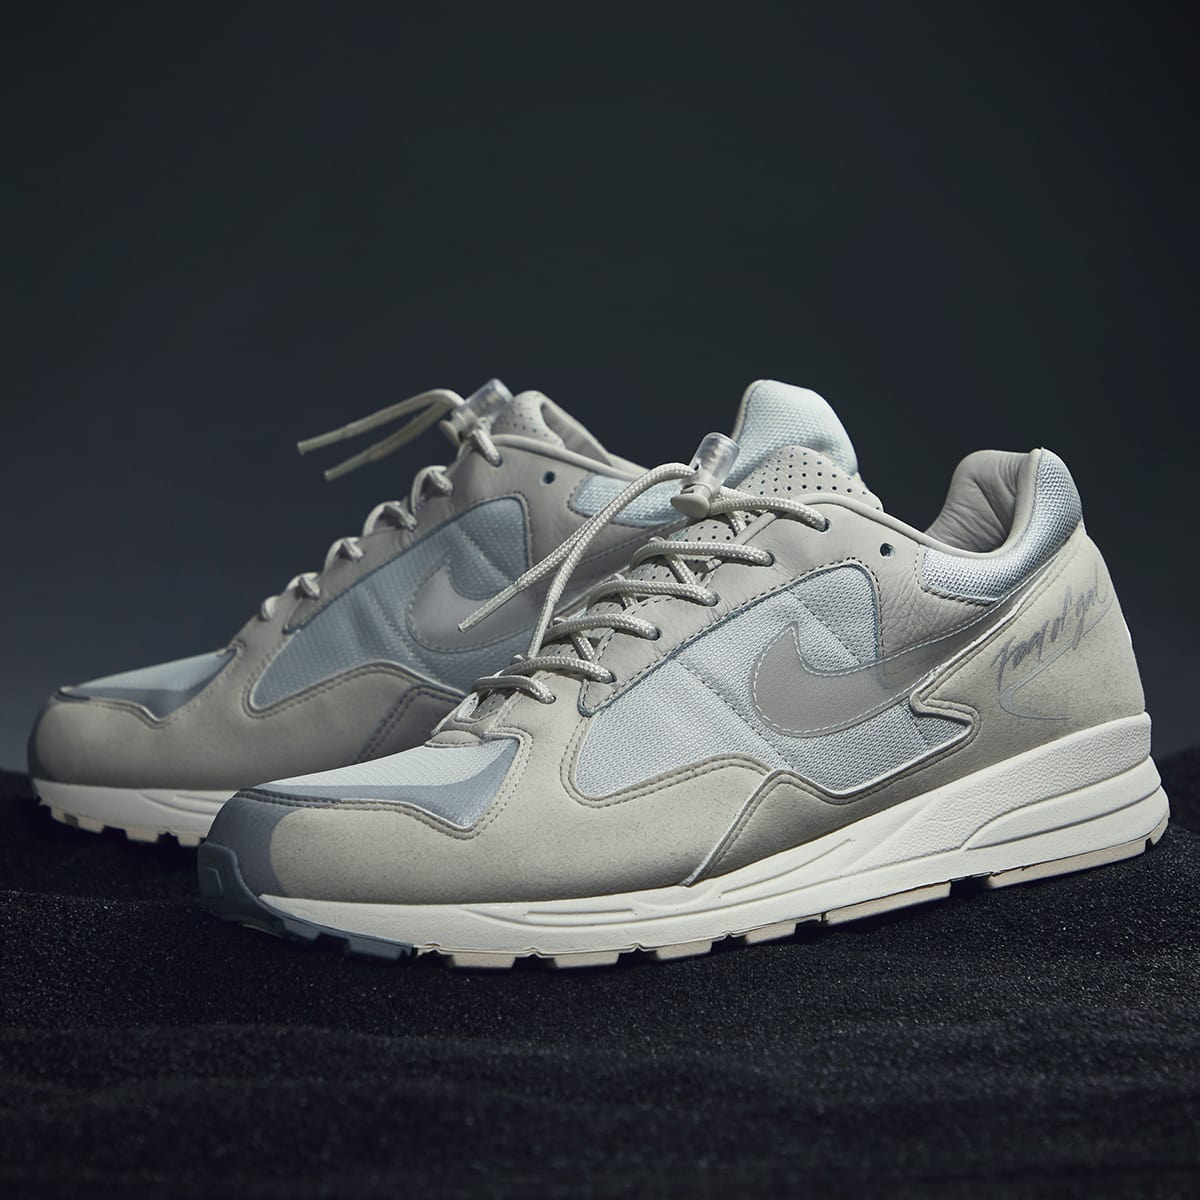 fear-of-god-nike-air-skylon-2-release-20190202